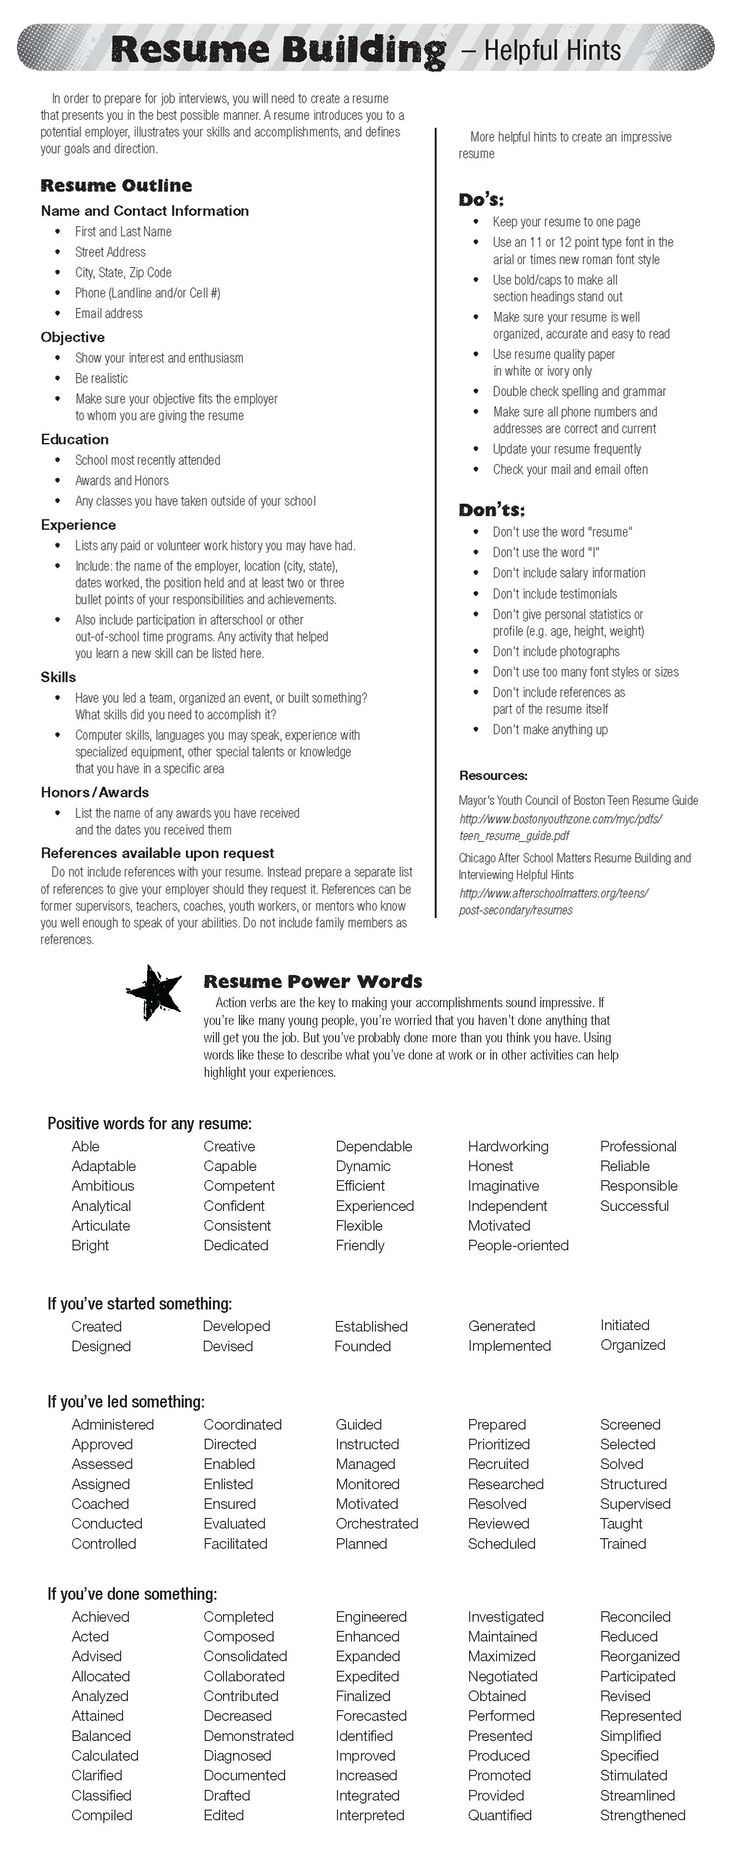 Opposenewapstandardsus  Gorgeous  Ideas About Resume On Pinterest  Cv Format Resume Cv And  With Inspiring  Ideas About Resume On Pinterest  Cv Format Resume Cv And Resume Templates With Astonishing Resume For Food Service Also Writers Resume In Addition Patient Access Representative Resume And How To Create The Perfect Resume As Well As School Secretary Resume Additionally References Page For Resume From Pinterestcom With Opposenewapstandardsus  Inspiring  Ideas About Resume On Pinterest  Cv Format Resume Cv And  With Astonishing  Ideas About Resume On Pinterest  Cv Format Resume Cv And Resume Templates And Gorgeous Resume For Food Service Also Writers Resume In Addition Patient Access Representative Resume From Pinterestcom